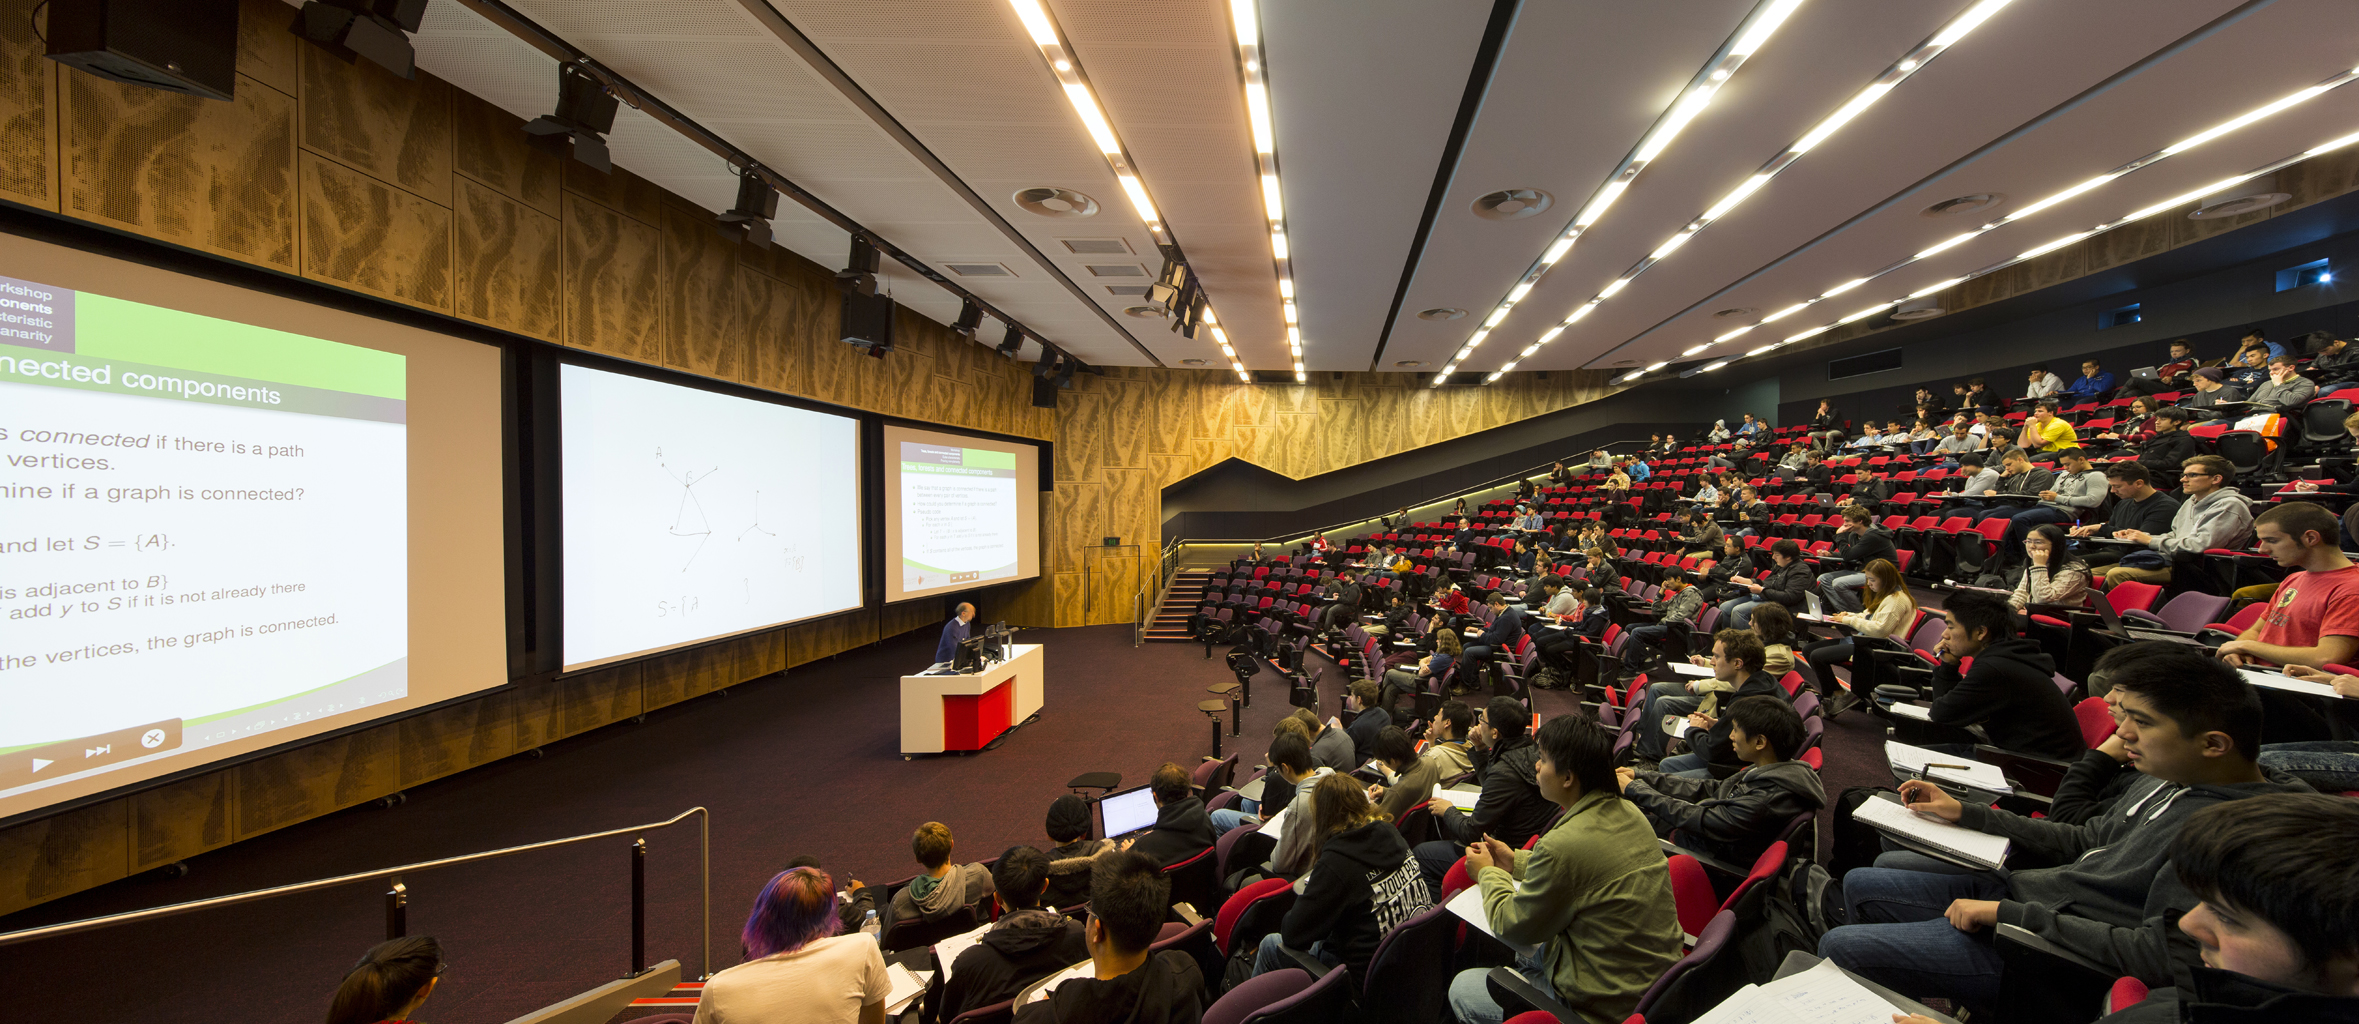 Macquarie-University-Lecture-Theatres-27.jpg